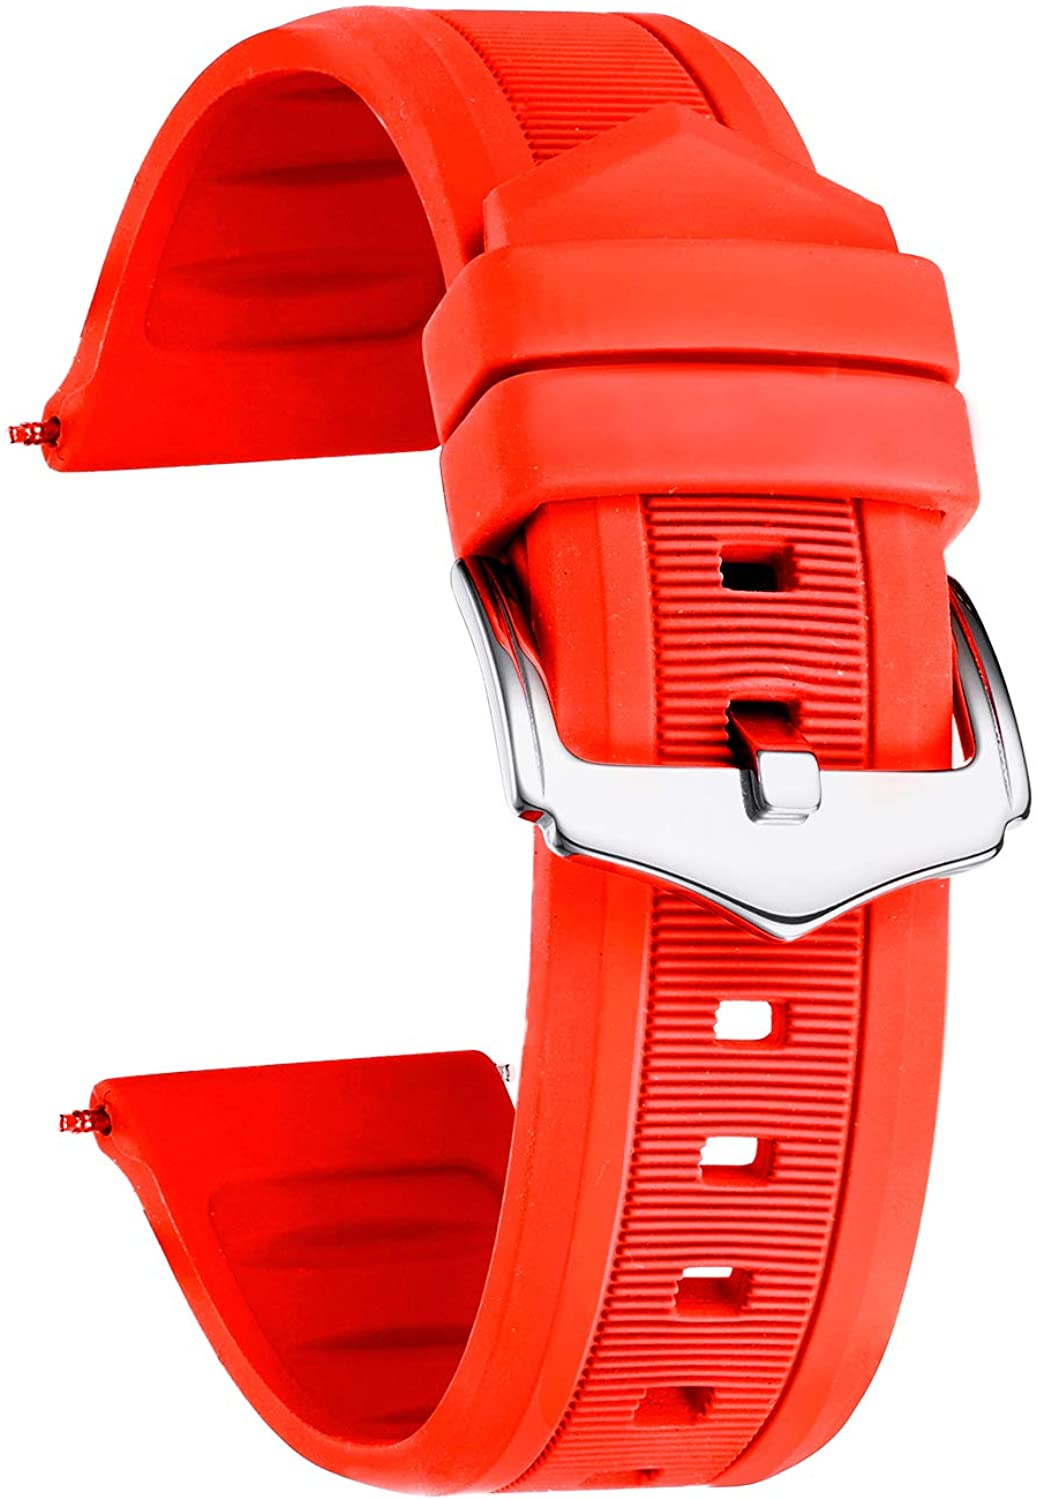 BINLUN Silicone Rubber Watch Band Smart Watch Strap Colors(White, Red, Black, Blue, Orange) Sizes(12mm,14mm,16mm,18mm,19mm,20mm,21mm,22mm,23mm,24mm,26mm,28mm)